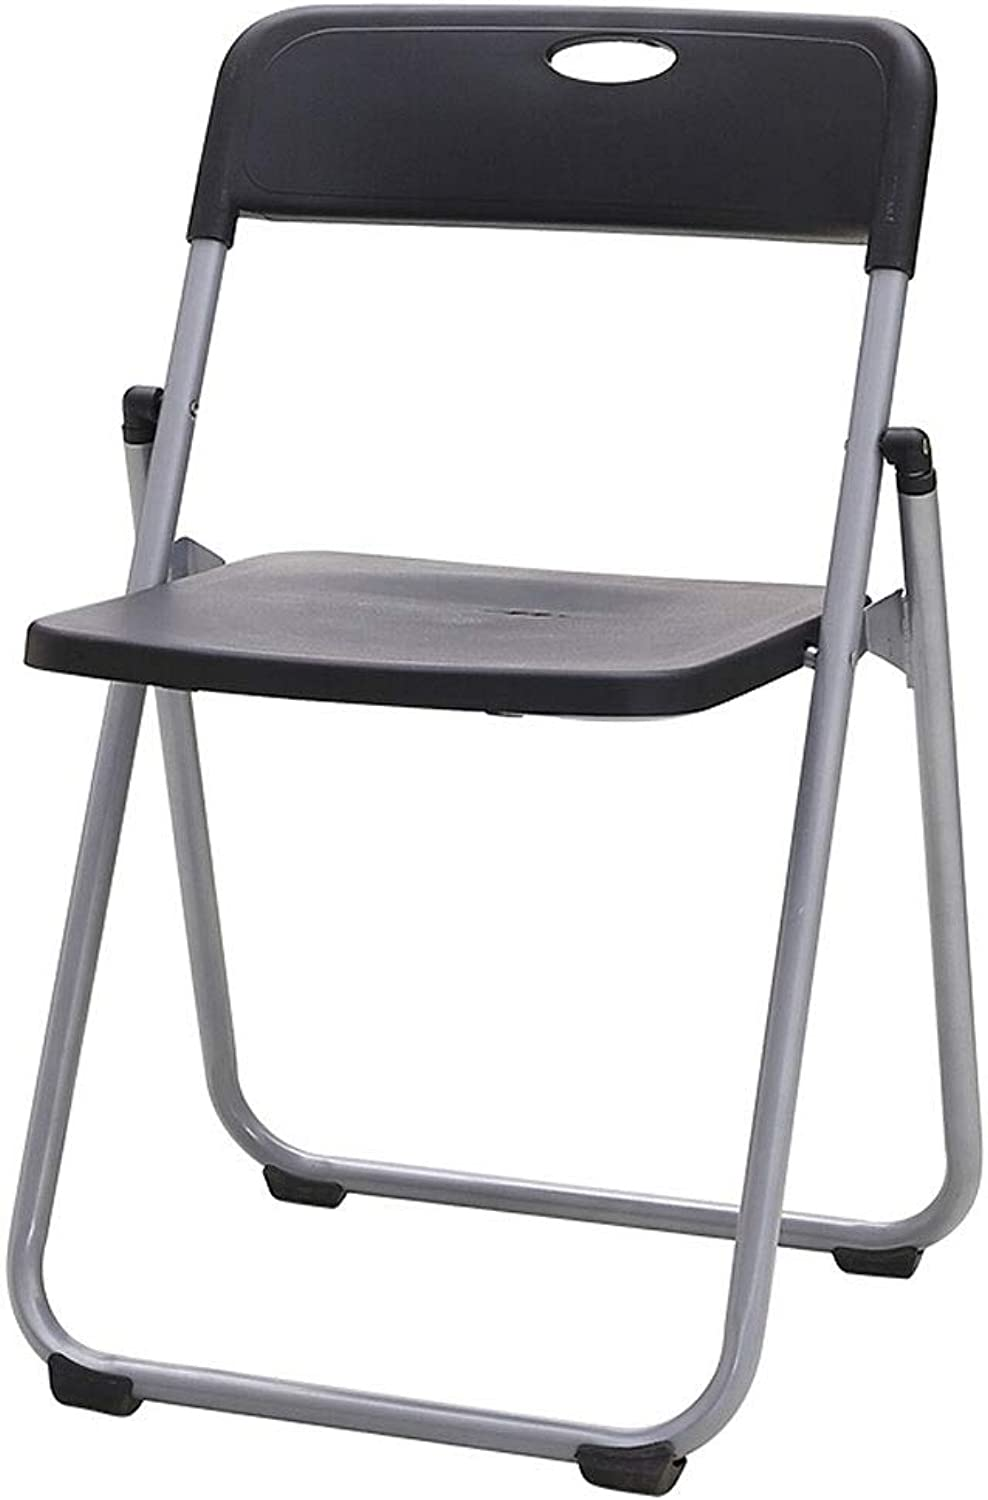 Paddia Comfortable Black Folding Office Chair Computer and Dining Seat Stool Folding Chairs Indoor Folding Chair Seating Folding Stool Desk Chair Office Reception Chair